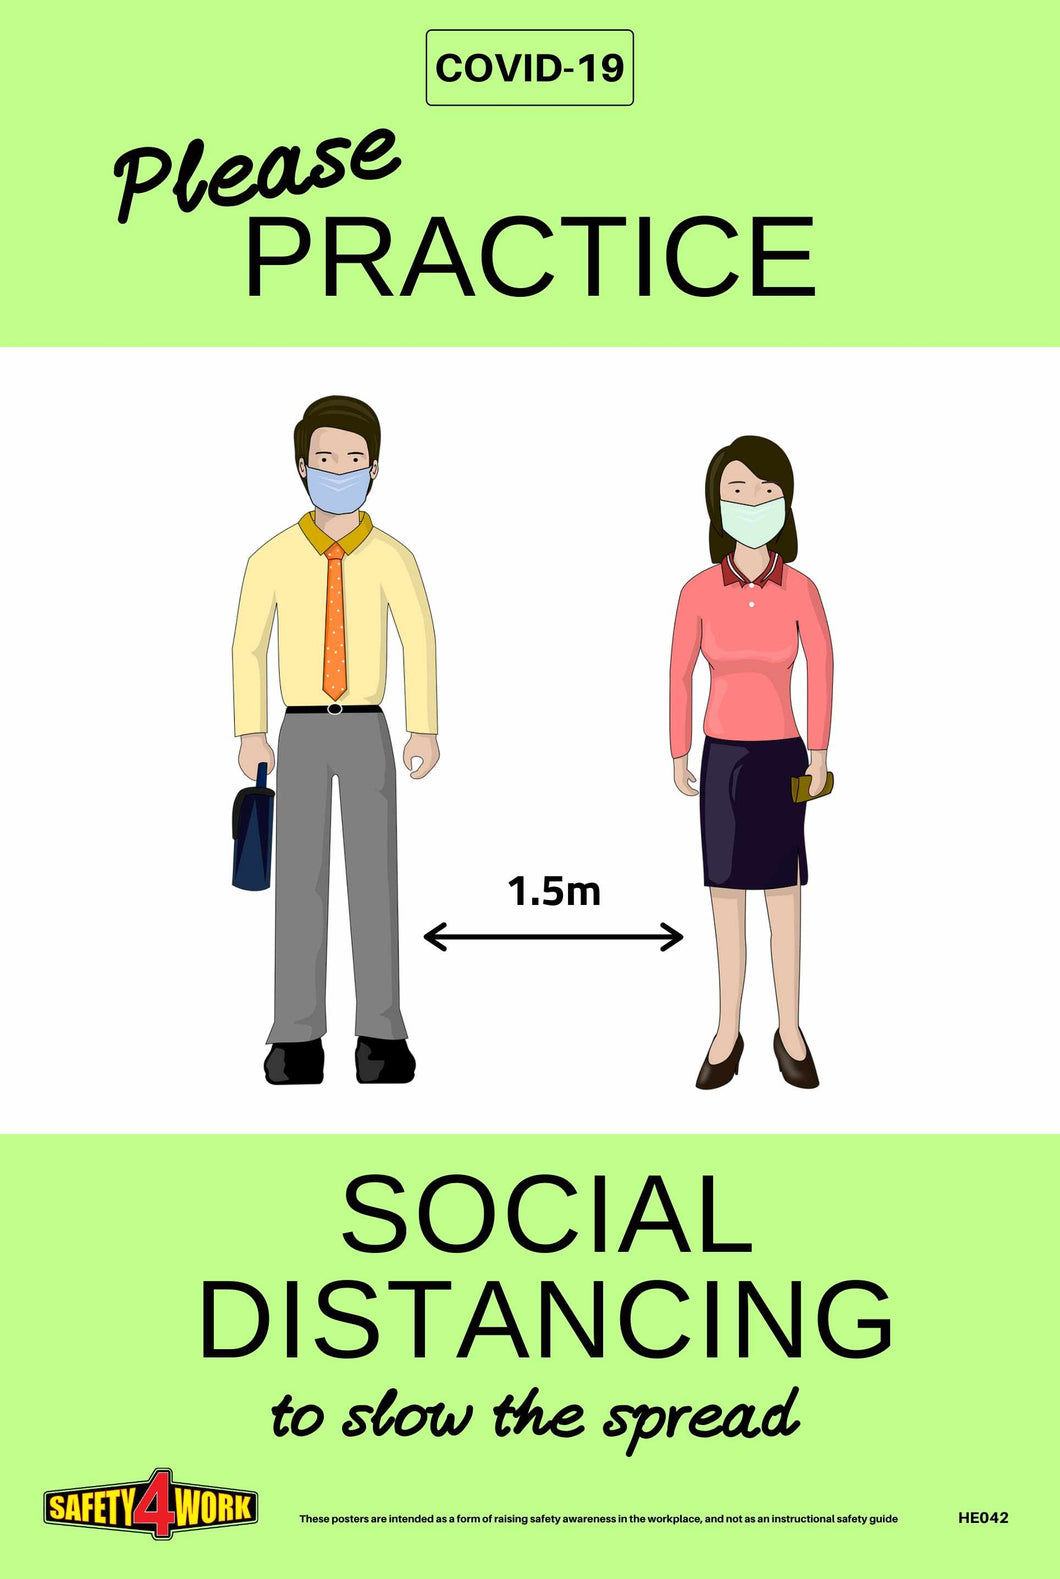 SOCIAL DISTANCING, COVID-19,  A4 POSTER- FREE DIGITAL DOWNLOAD(PDF)